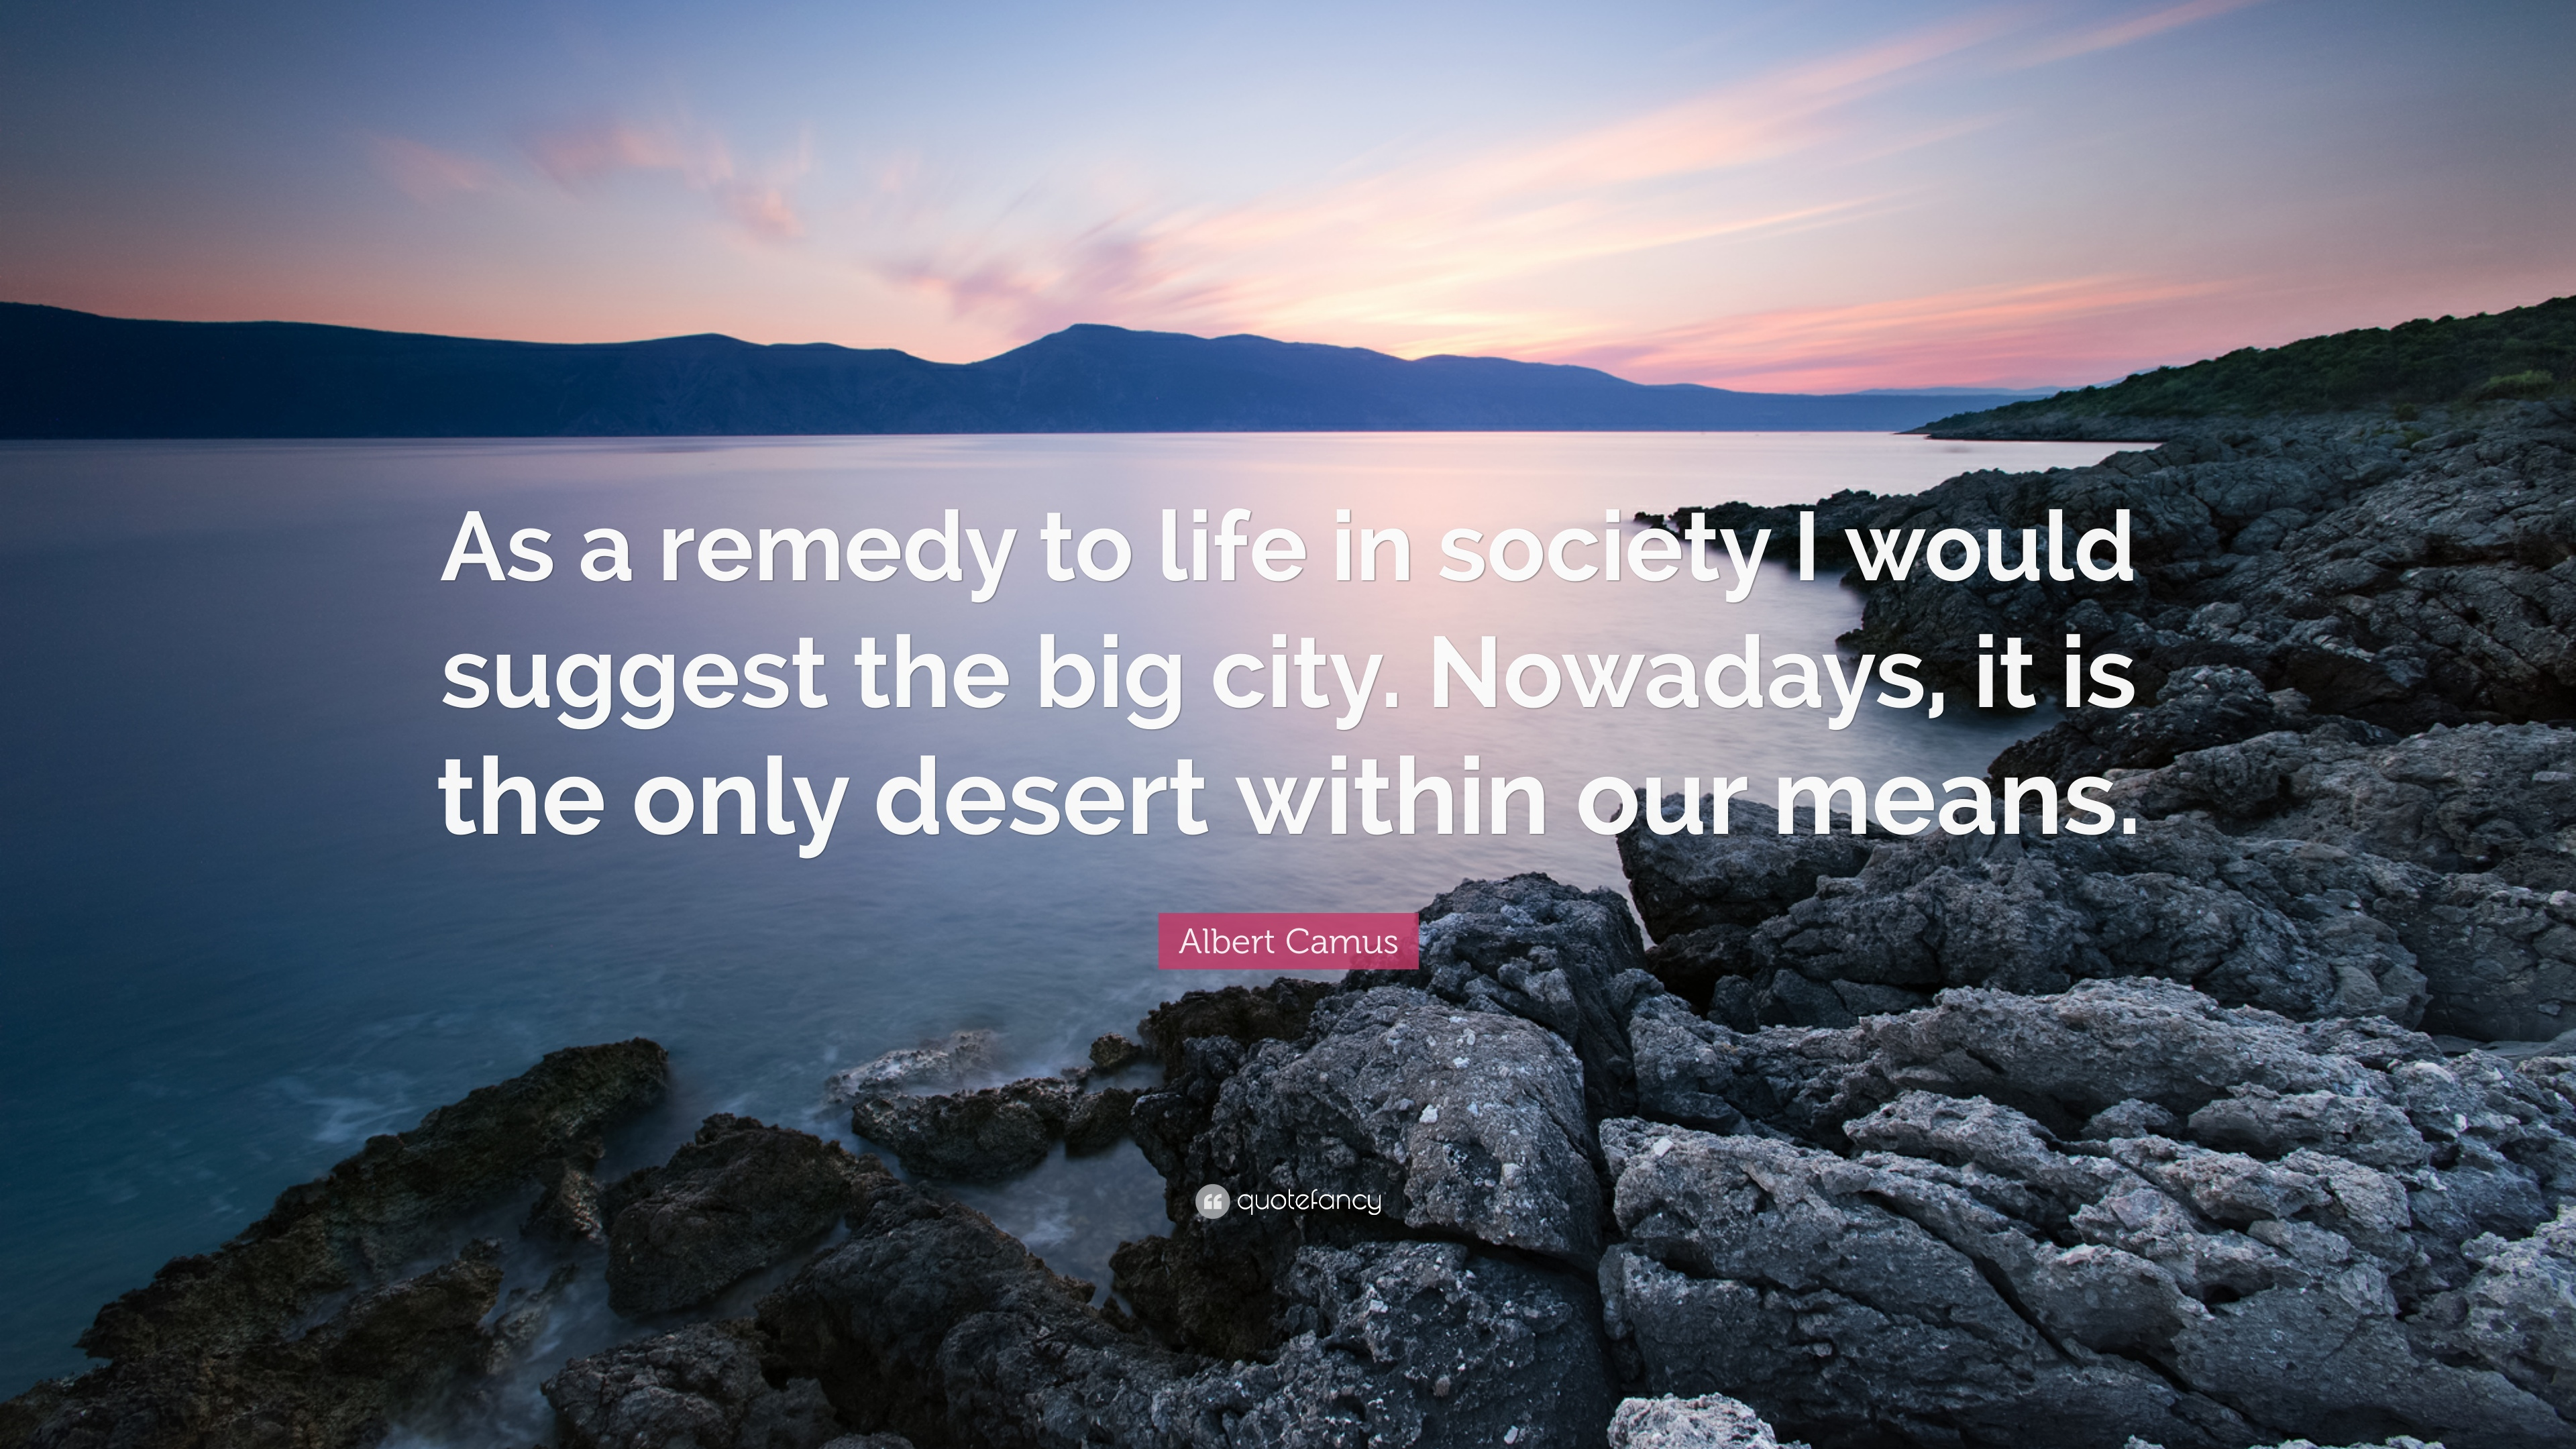 Albert Camus Quote As A Remedy To Life In Society I Would Suggest